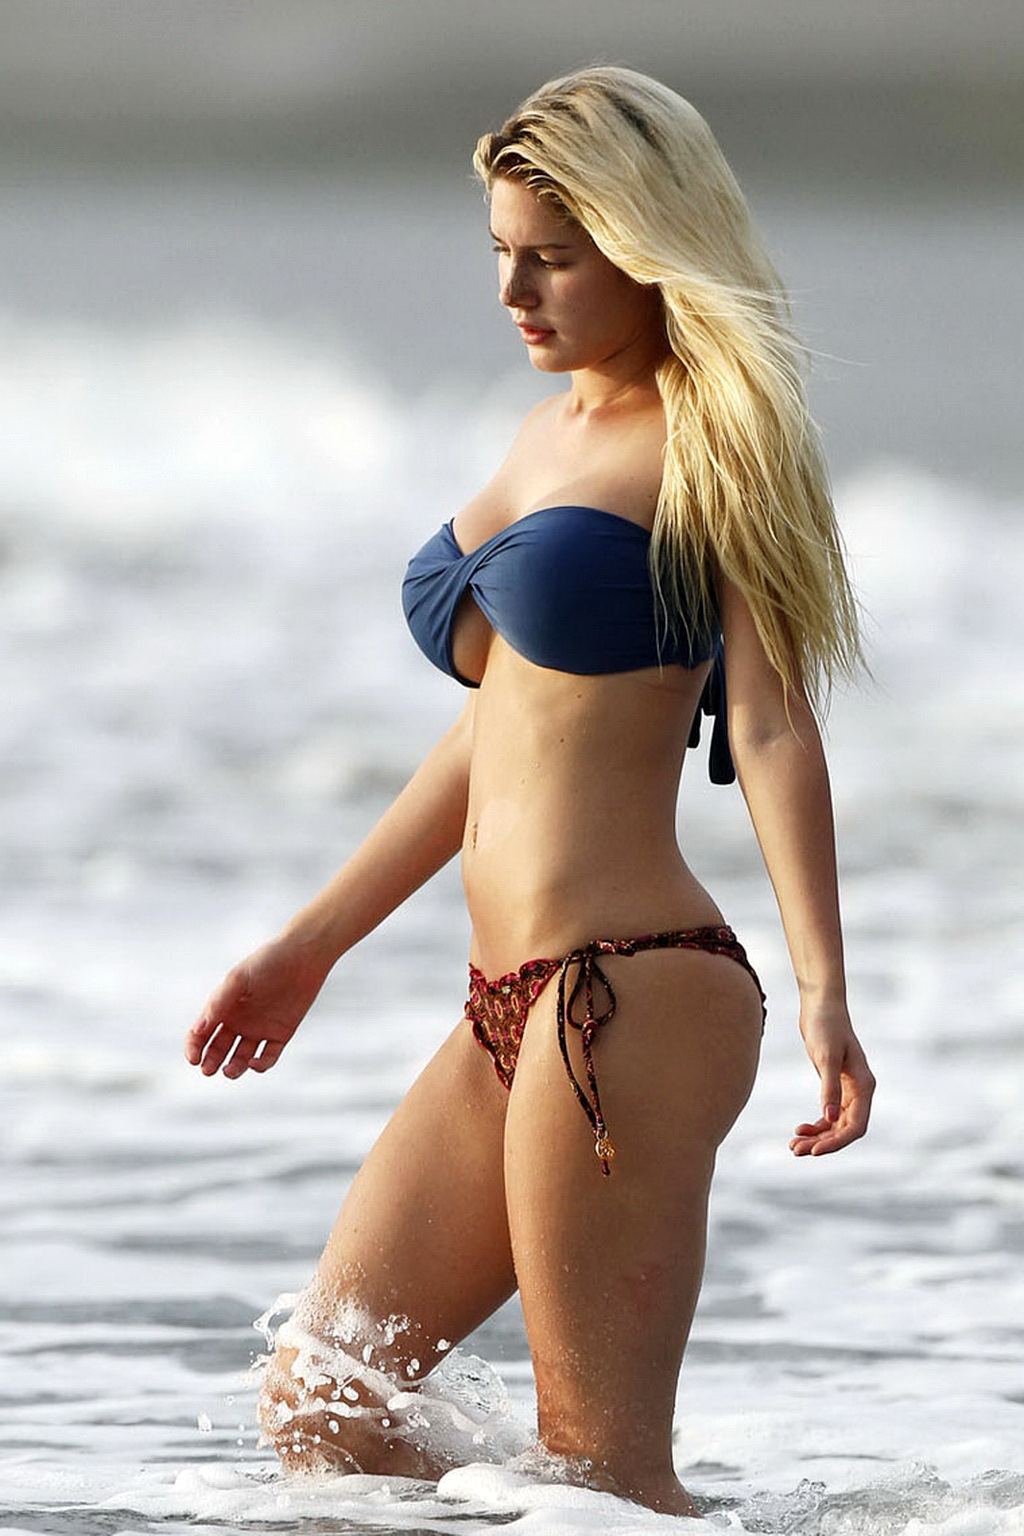 Pic Heidi Montag Wears Bikini For First Time Since Surgery